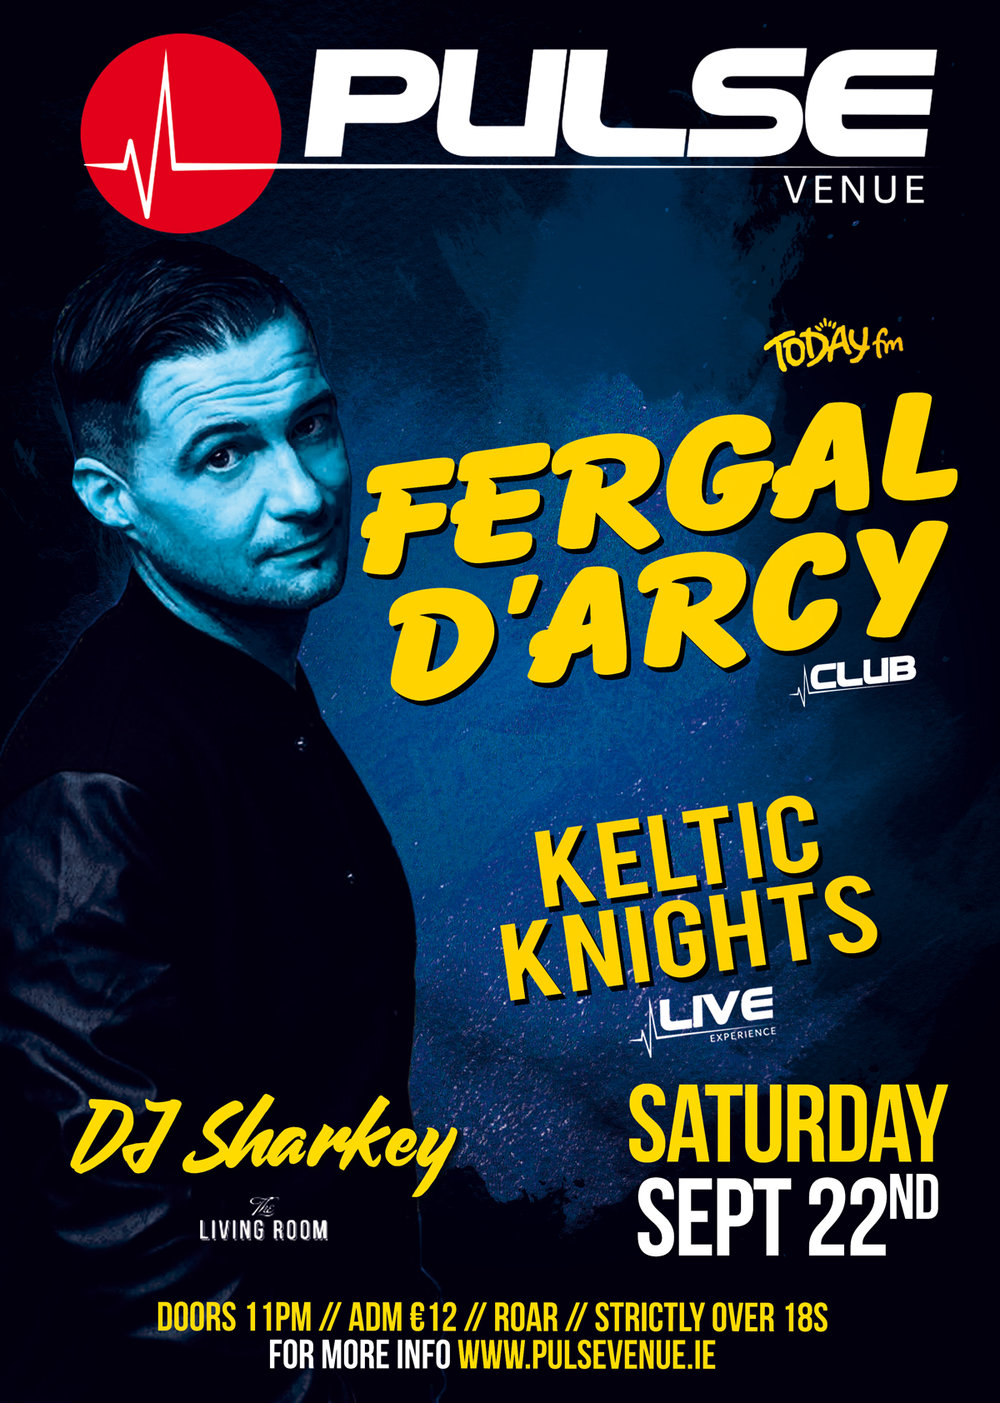 PULSE-VENUE---fergal-darcy---keltic-knights--sat-sept-22-2018.jpg